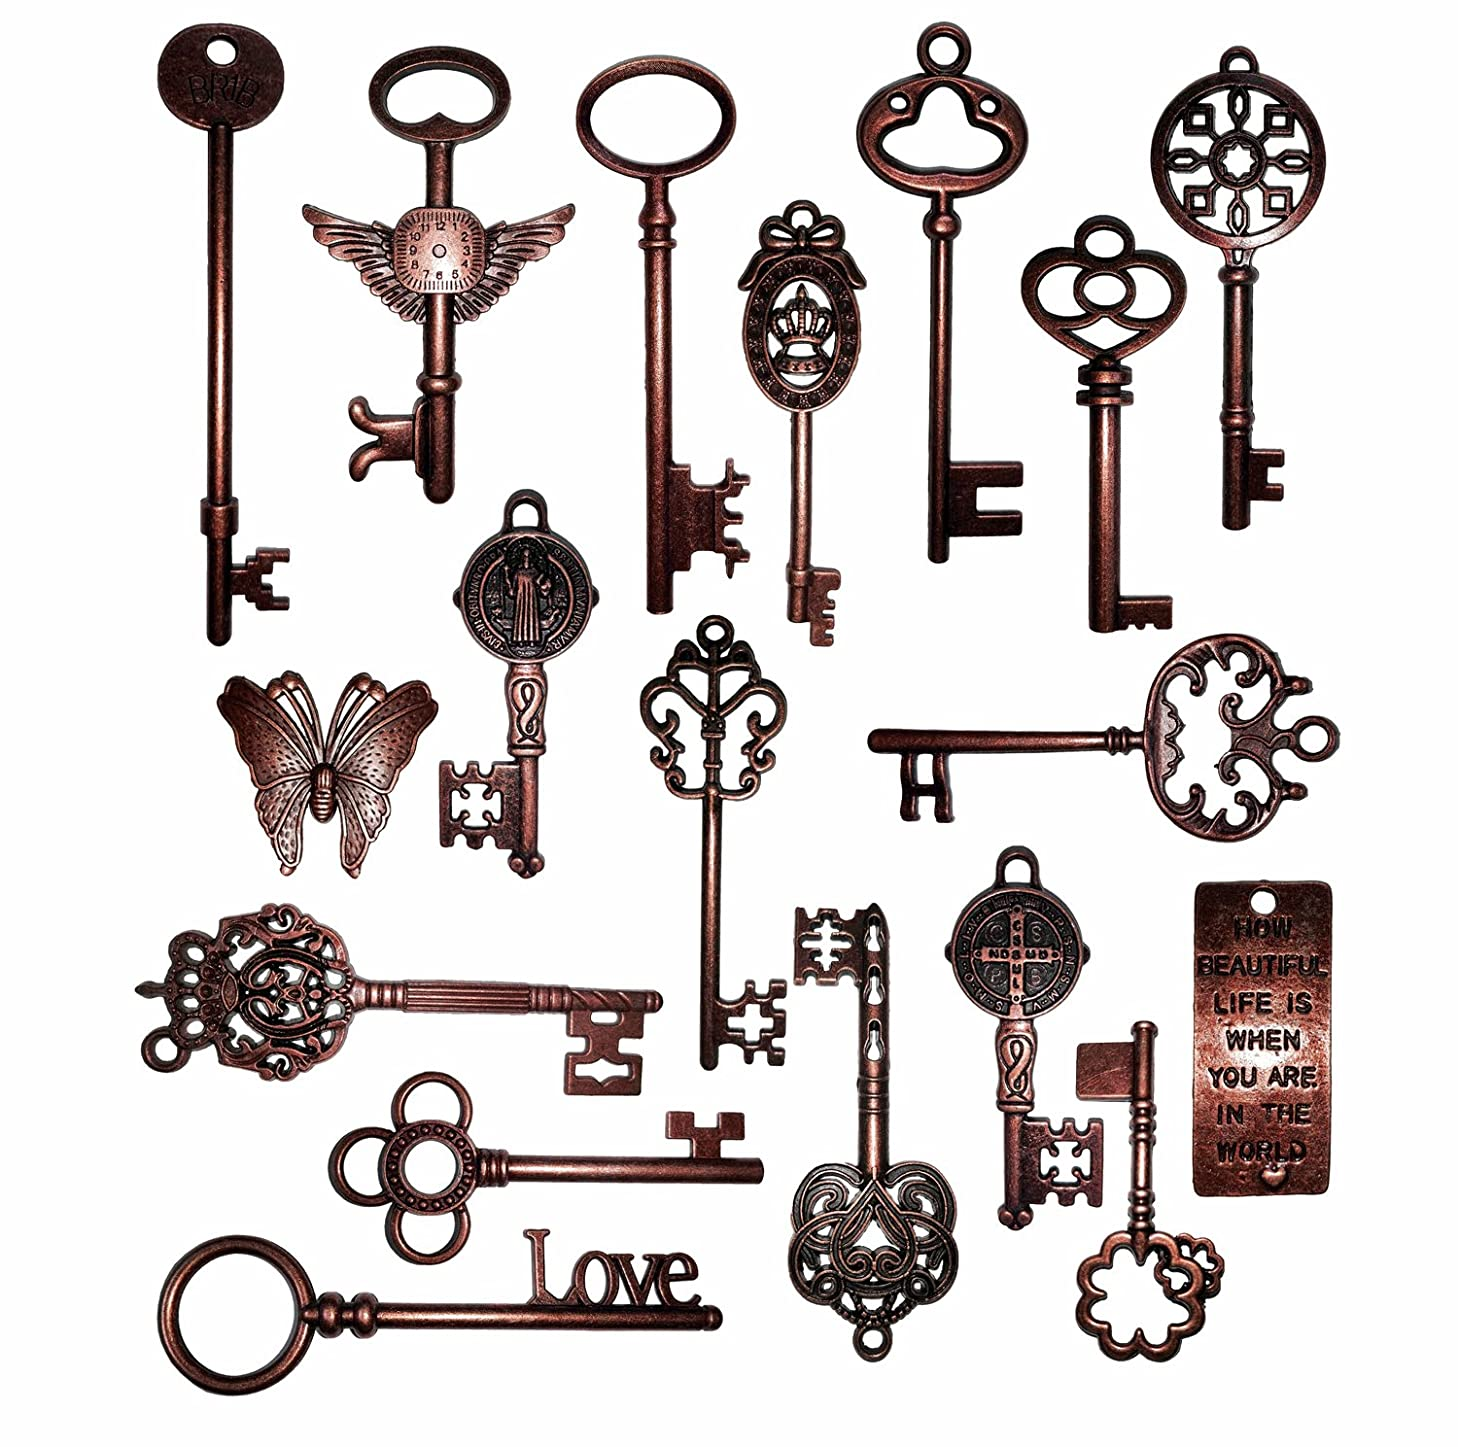 Vintage Skeleton Keys Charm Set in Antique Copper Pack of 18 Keys, 18 Different Style, No Repeat (Copper)